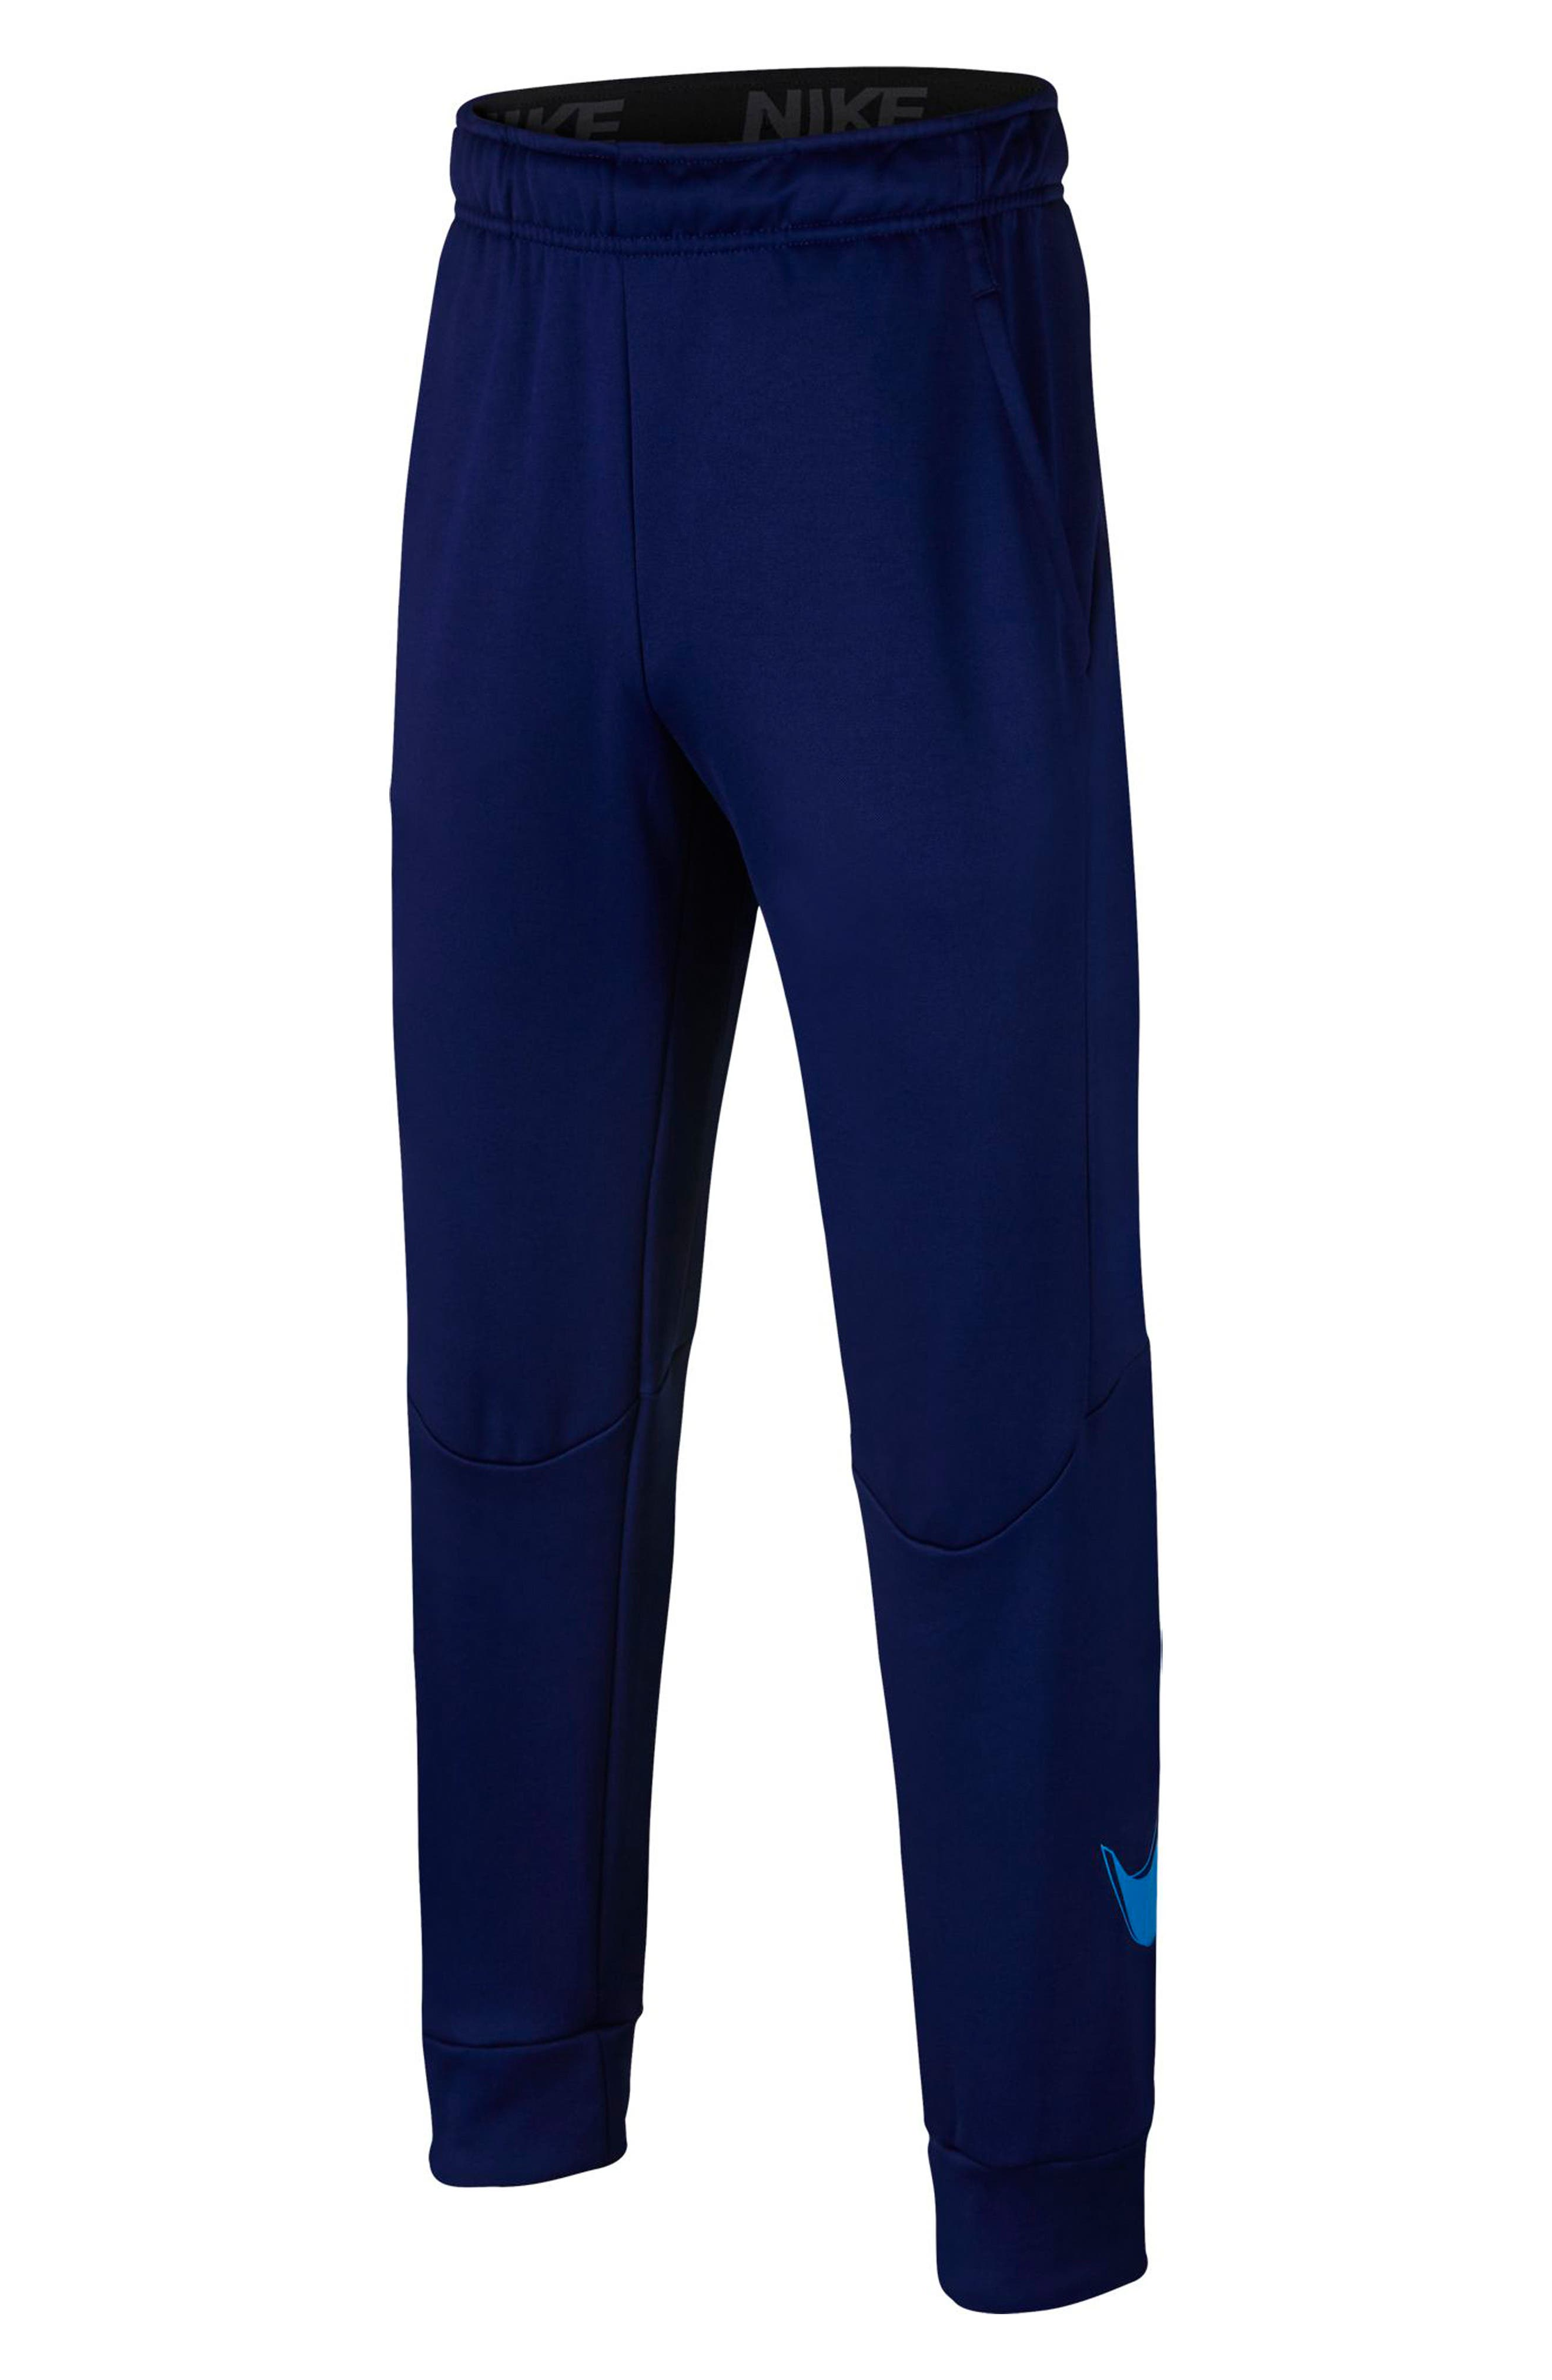 NIKE, Therma Sweatpants, Main thumbnail 1, color, BLUE VOID/ BLUE HERO